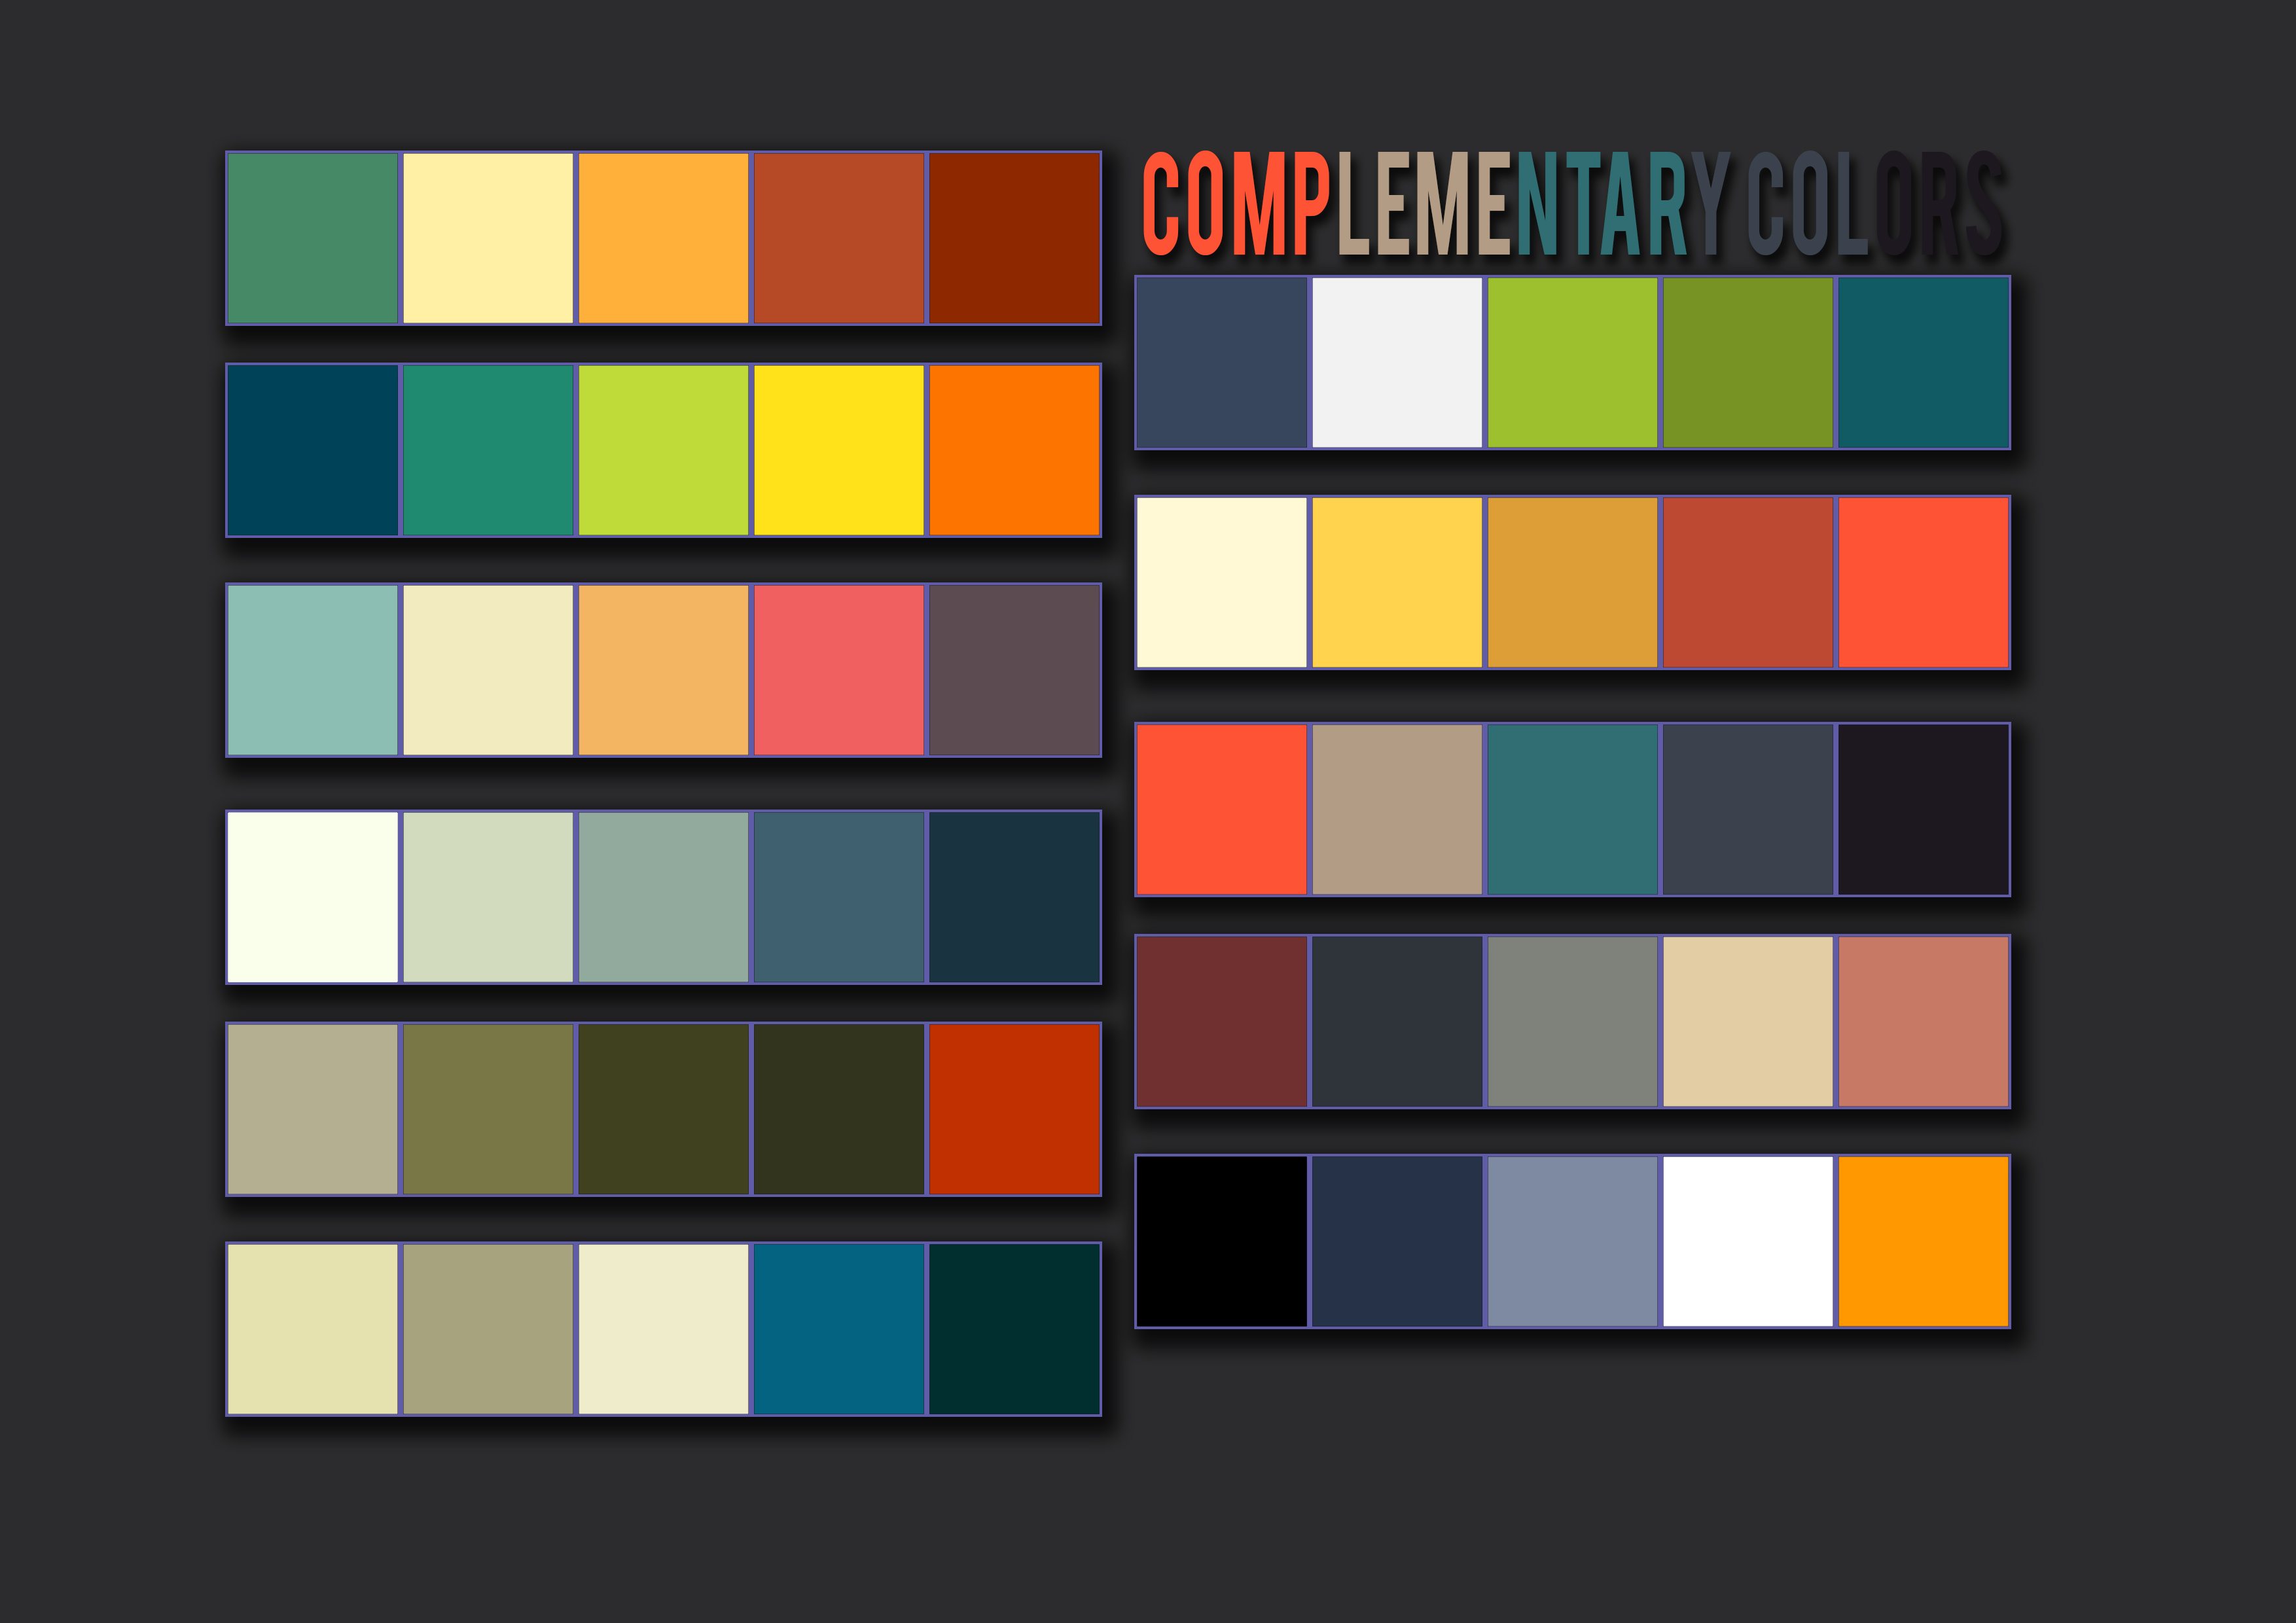 Complementary colors pallet